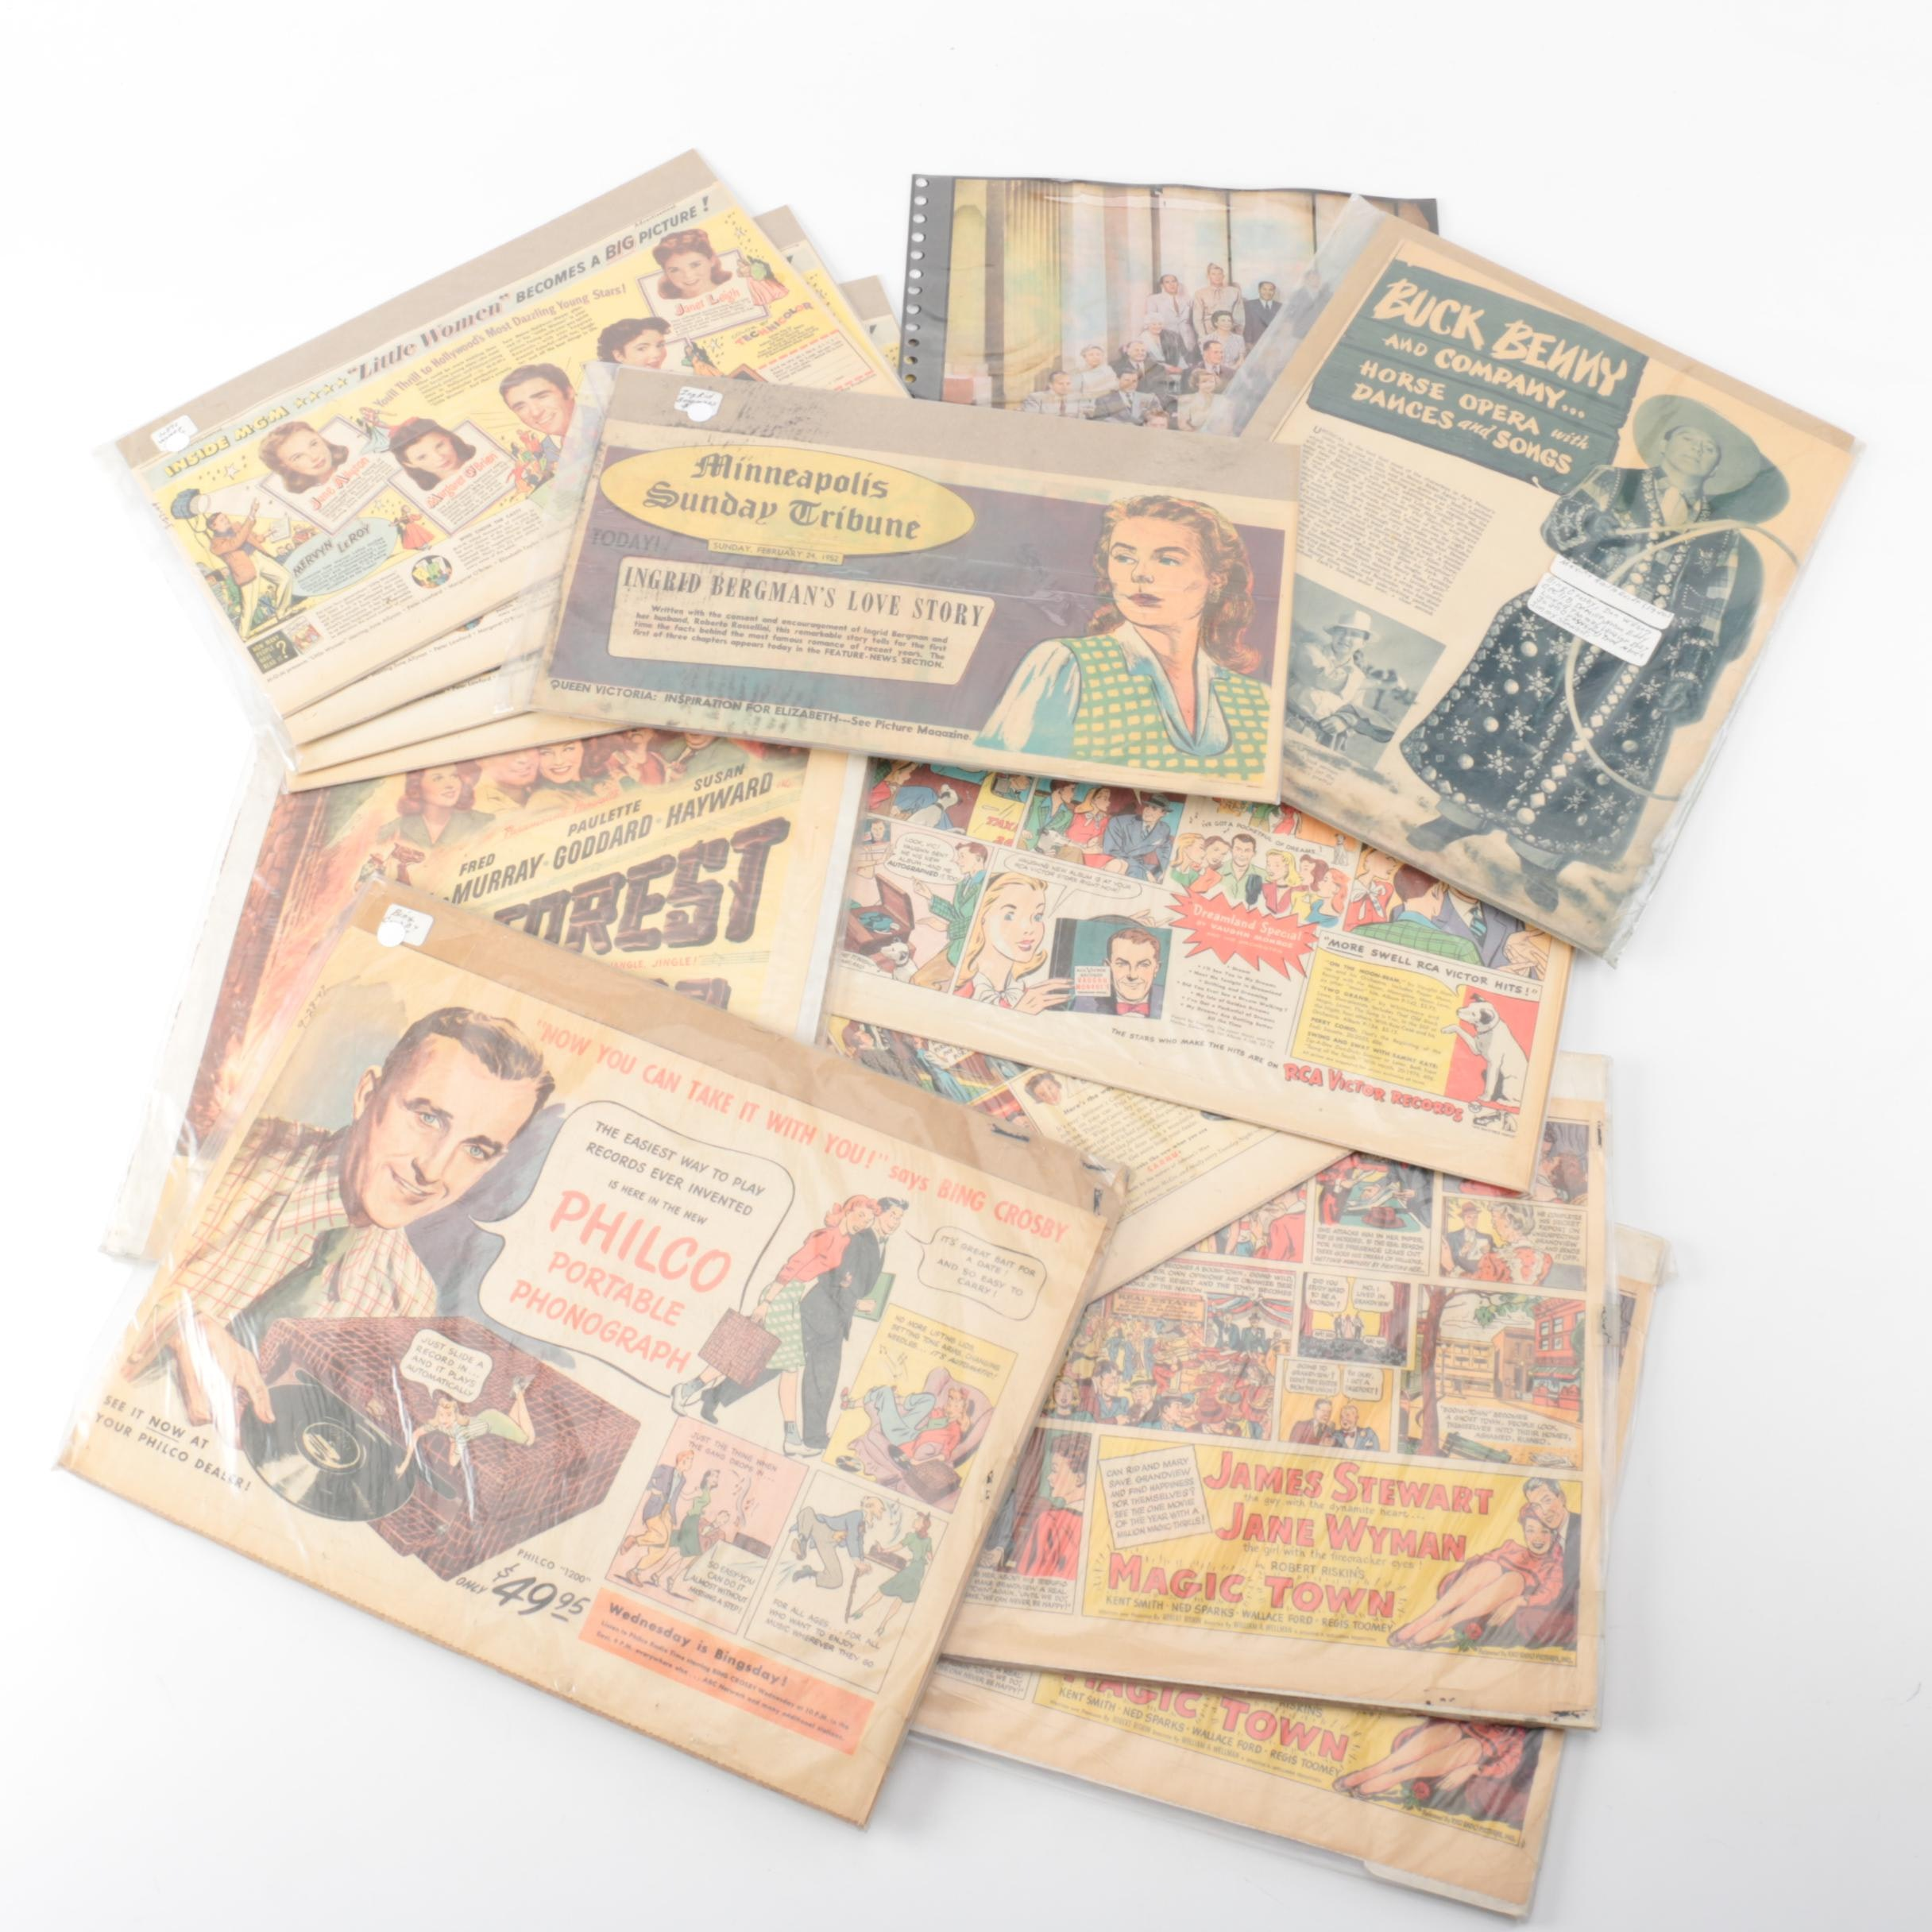 1940s–50s Movie and Product Ads Including Bing Crosby and Vaughan Monroe